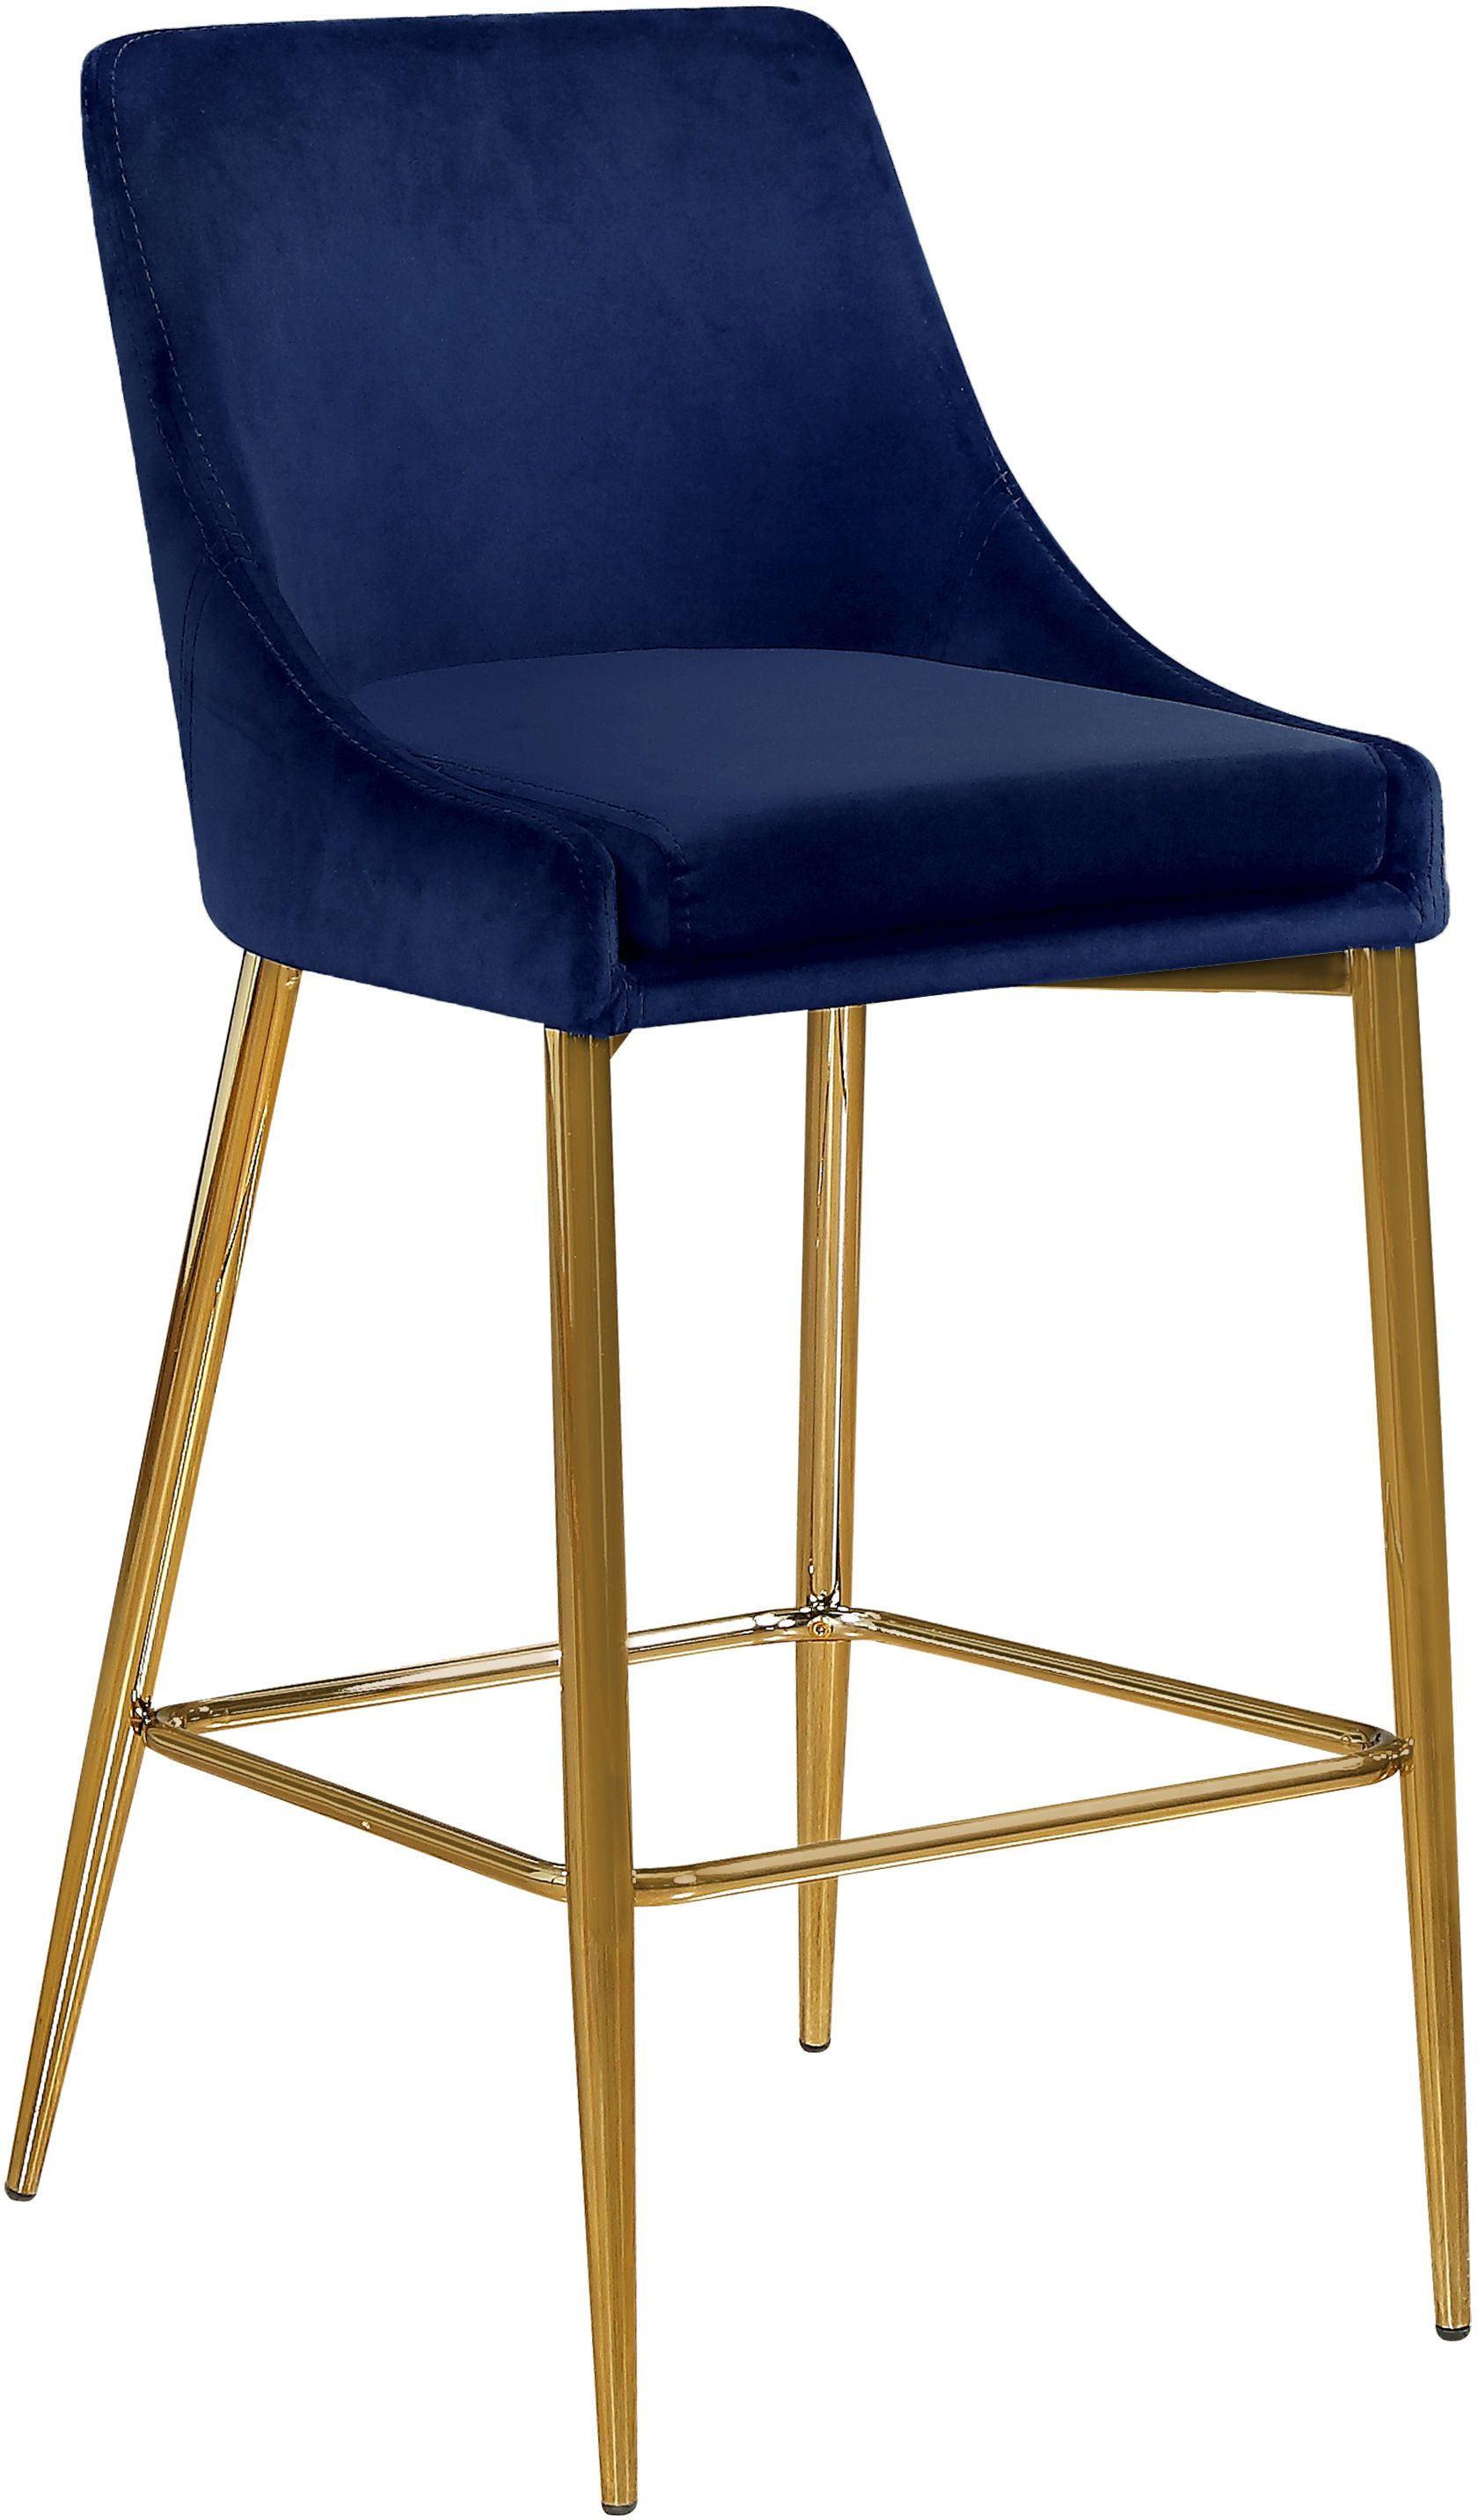 Karina Navy Bar Stool 789 Meridian Furniture Bar Tables Bar Stools Counter Stools Green Bar Stools